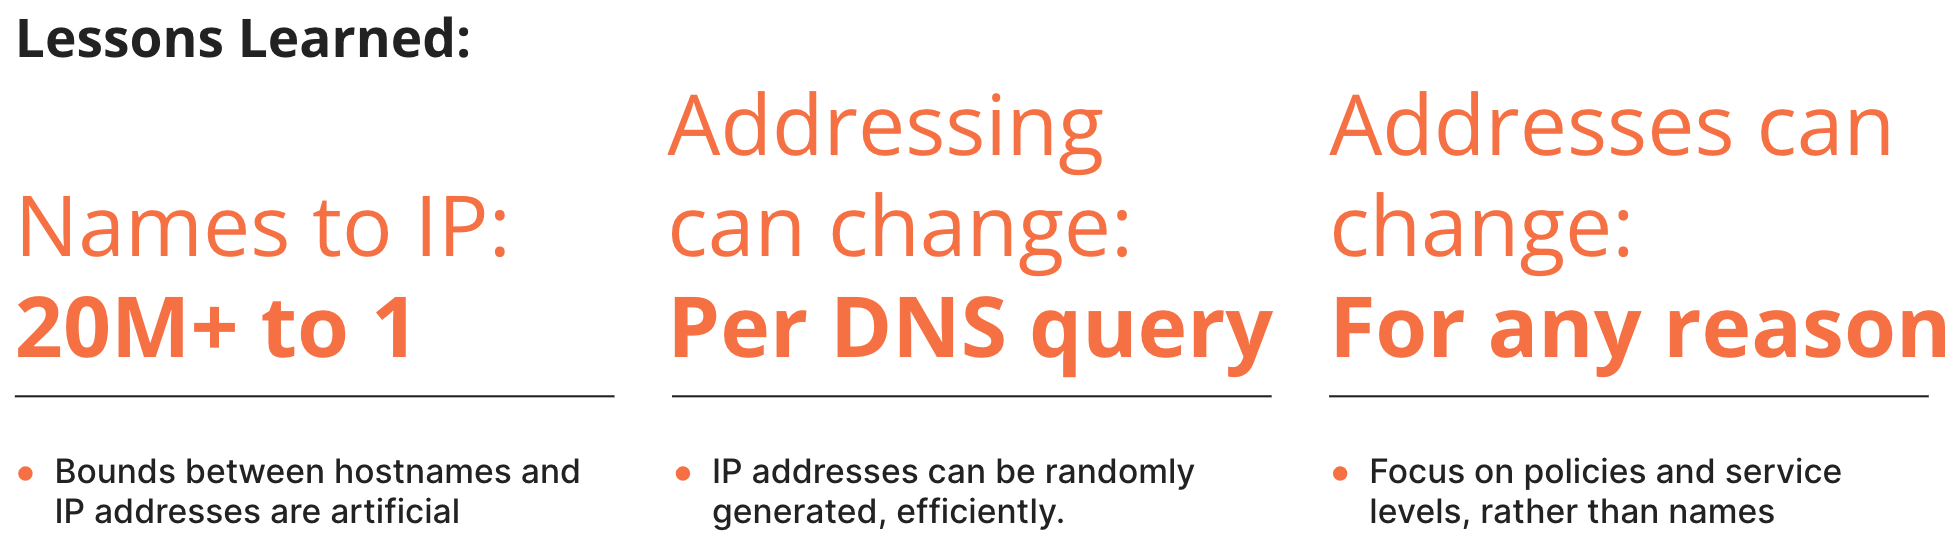 Unbuckling the narrow waist of IP: Addressing Agility for Names and Web Services